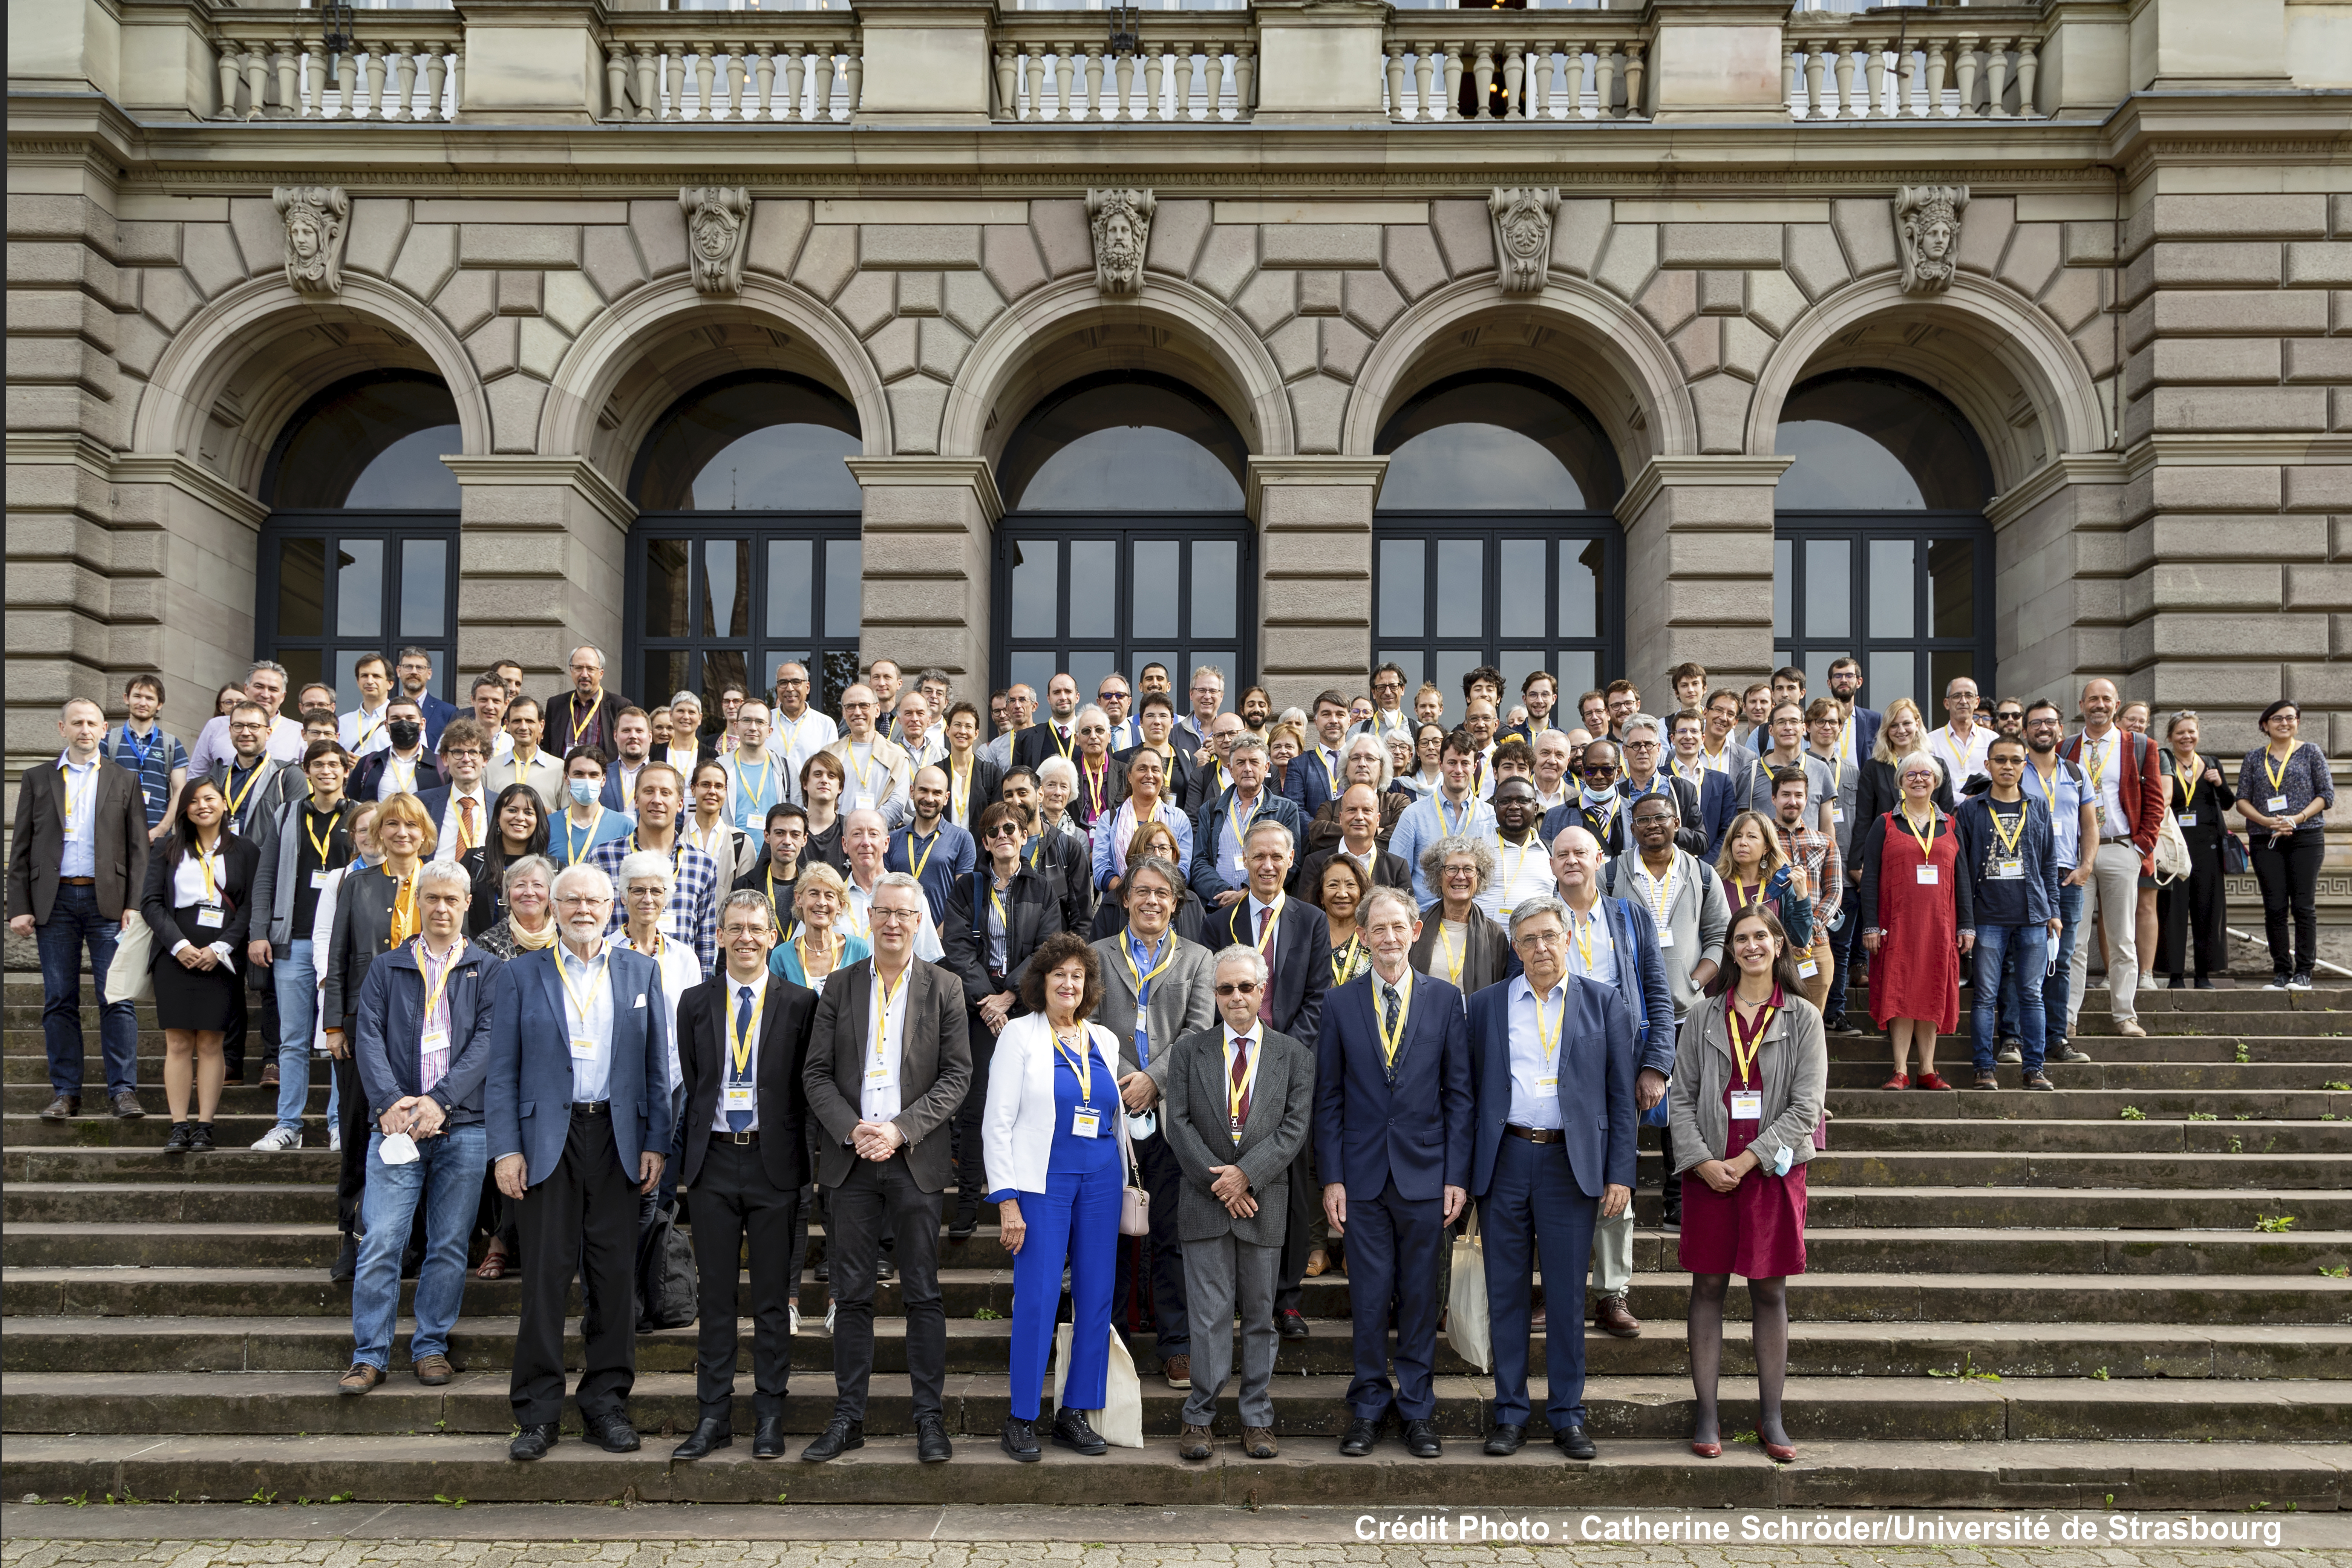 photo of the participants, Monday September 27 2021 on the steps of the Palais Universitaire in Strasbourg.